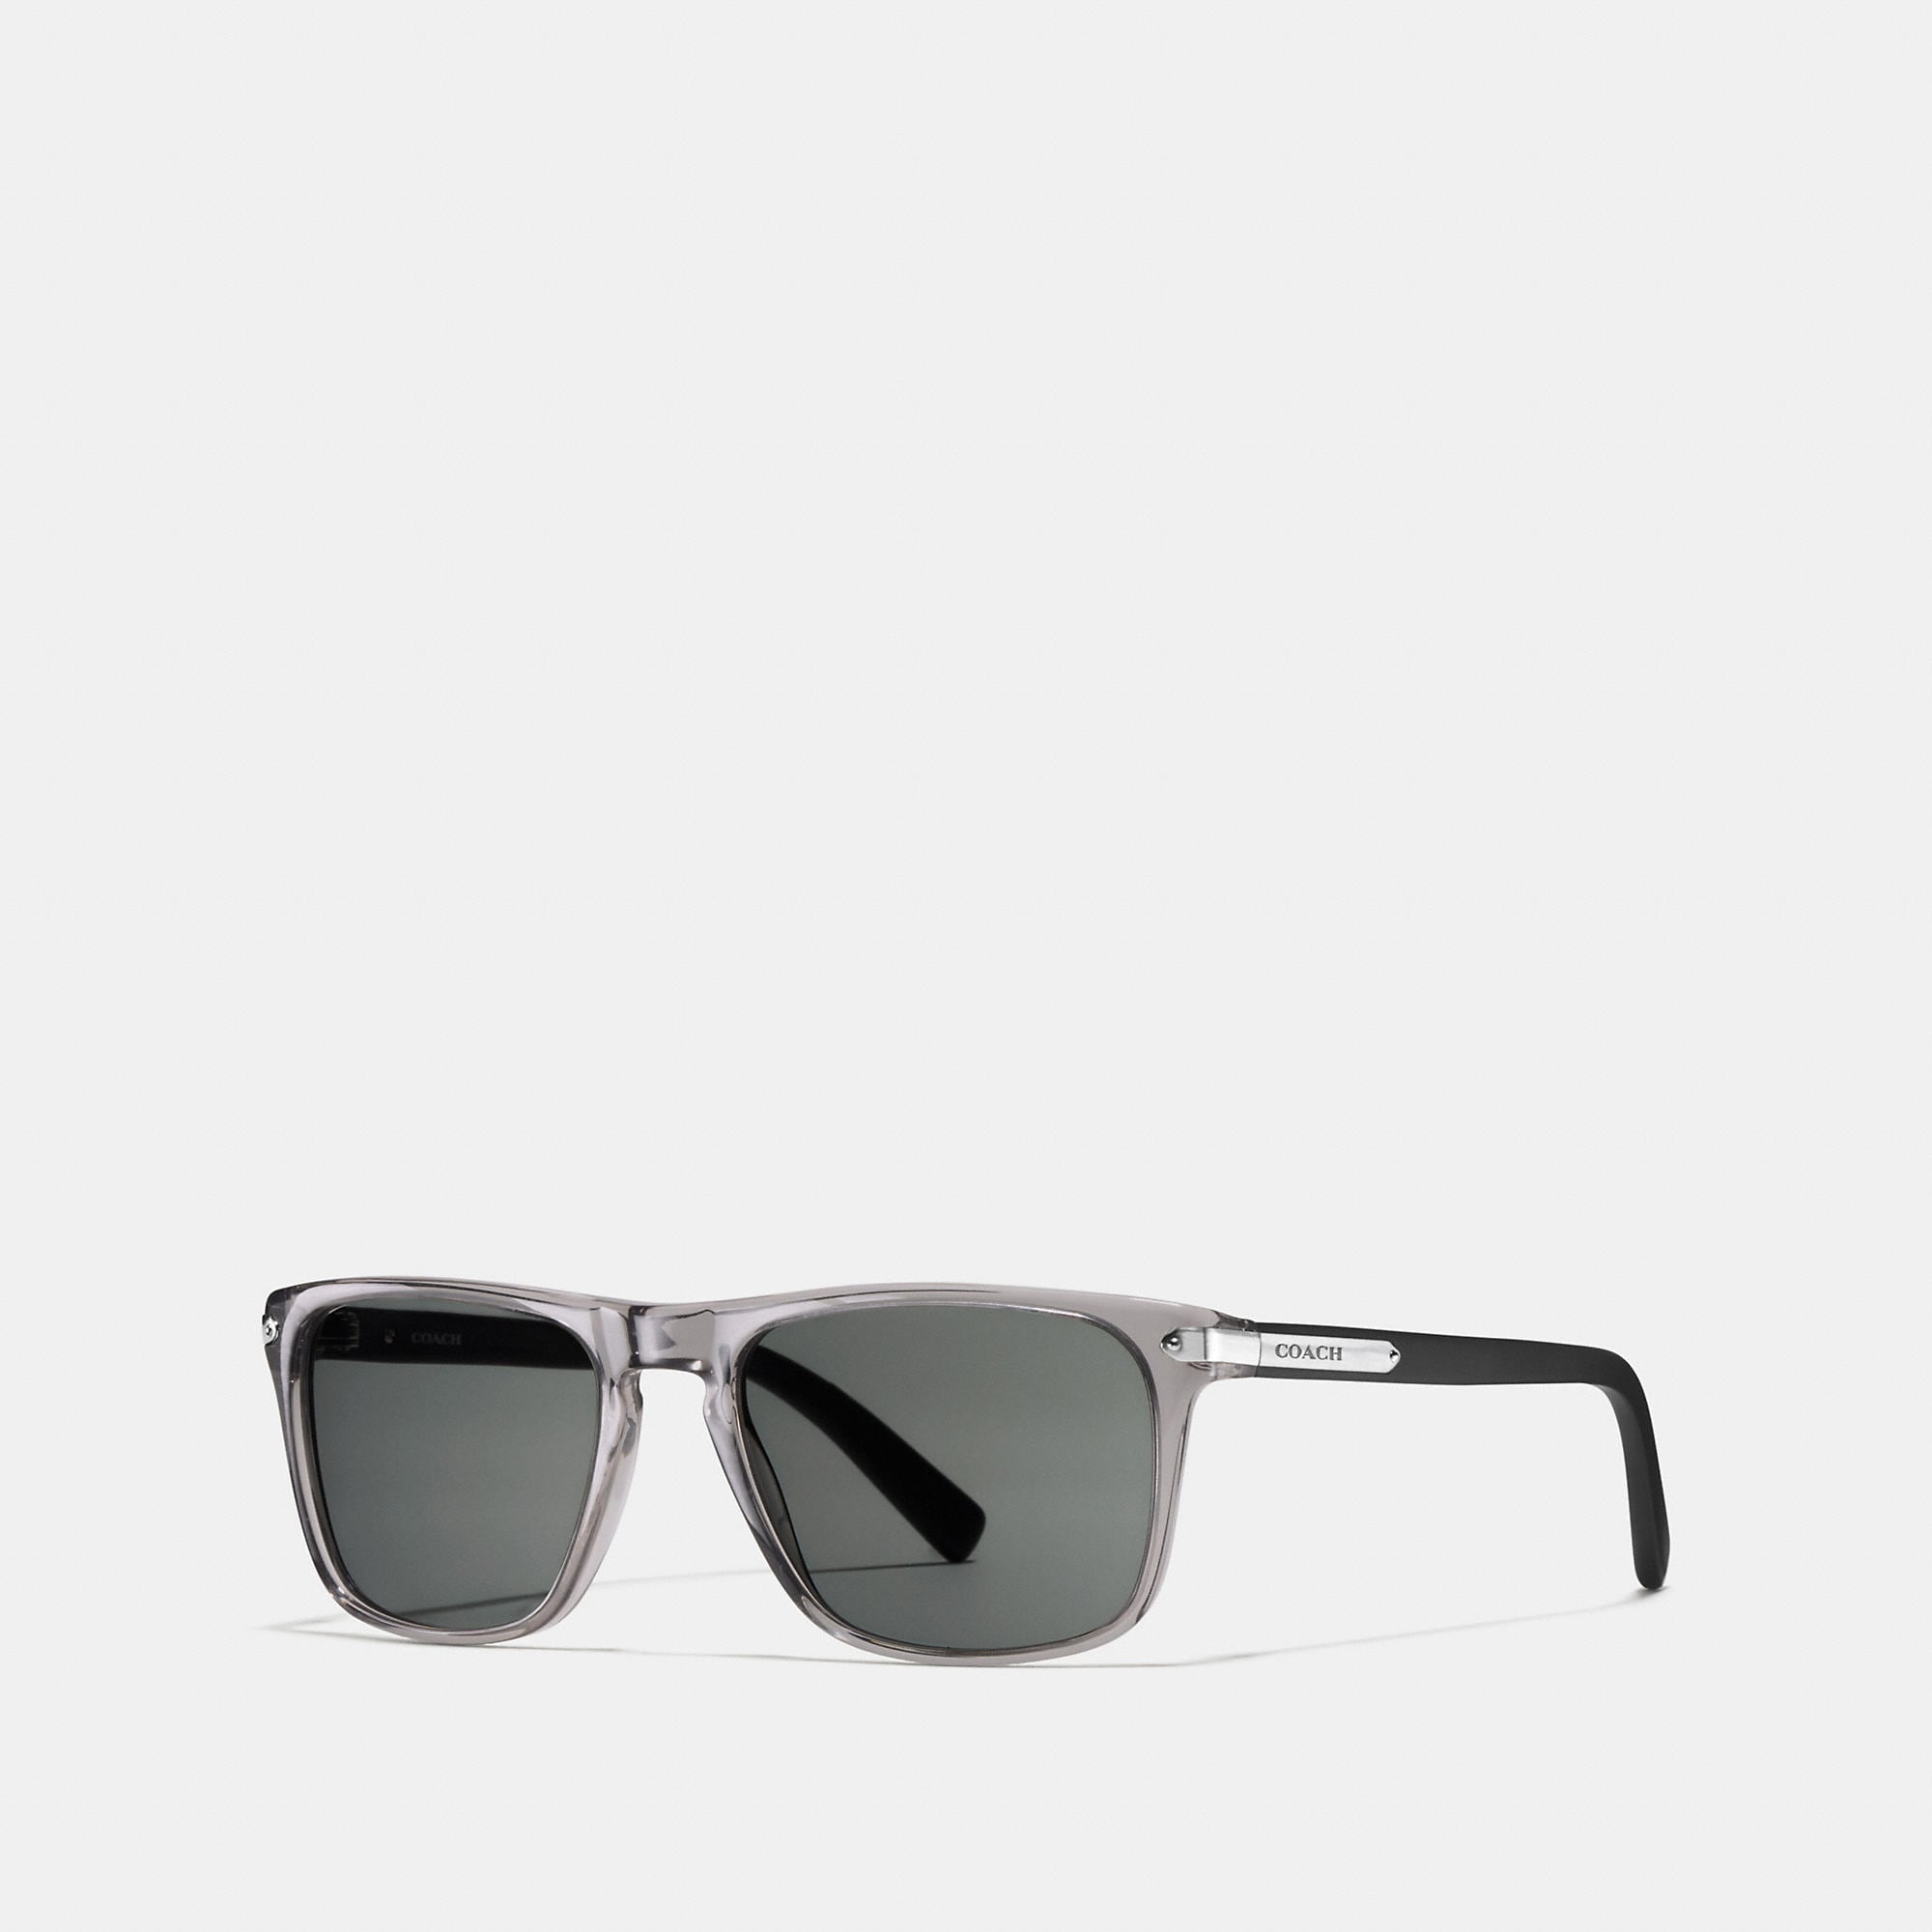 Coach Tag Temple Square Sunglasses